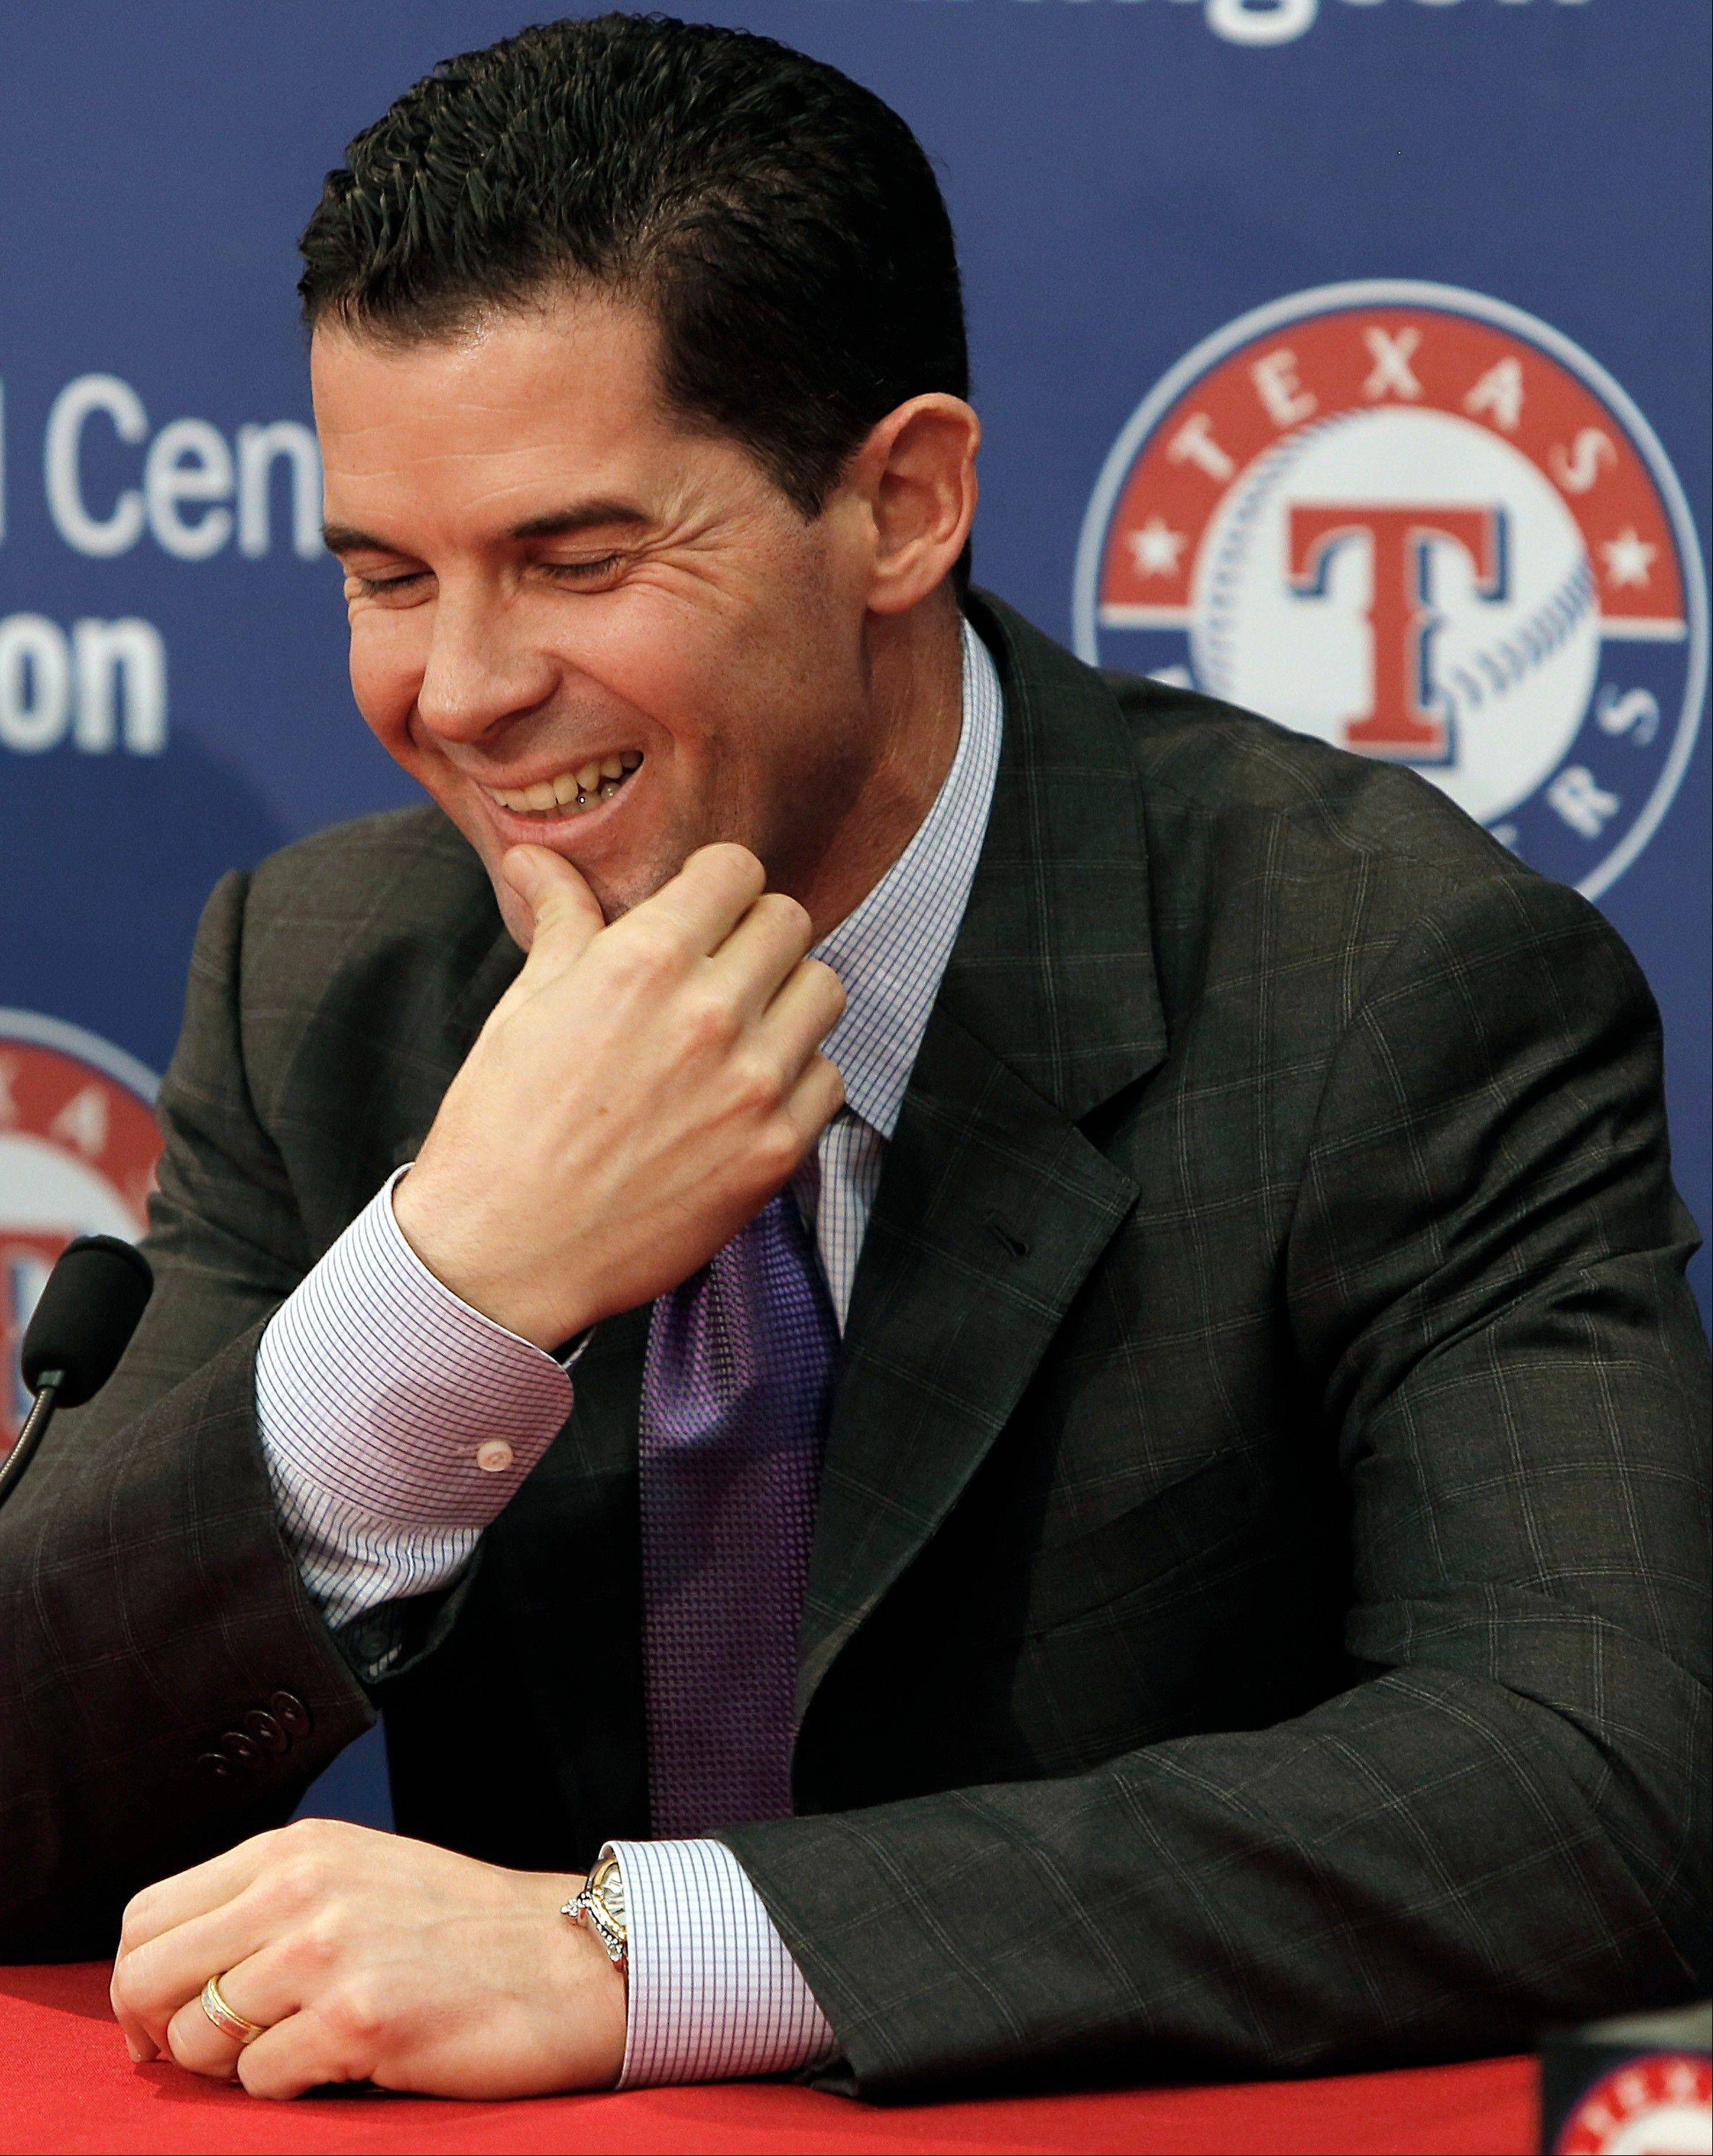 Michael Young answers questions about his retirement from baseball during a news conference Friday at Rangers Ballpark in Arlington, Texas.